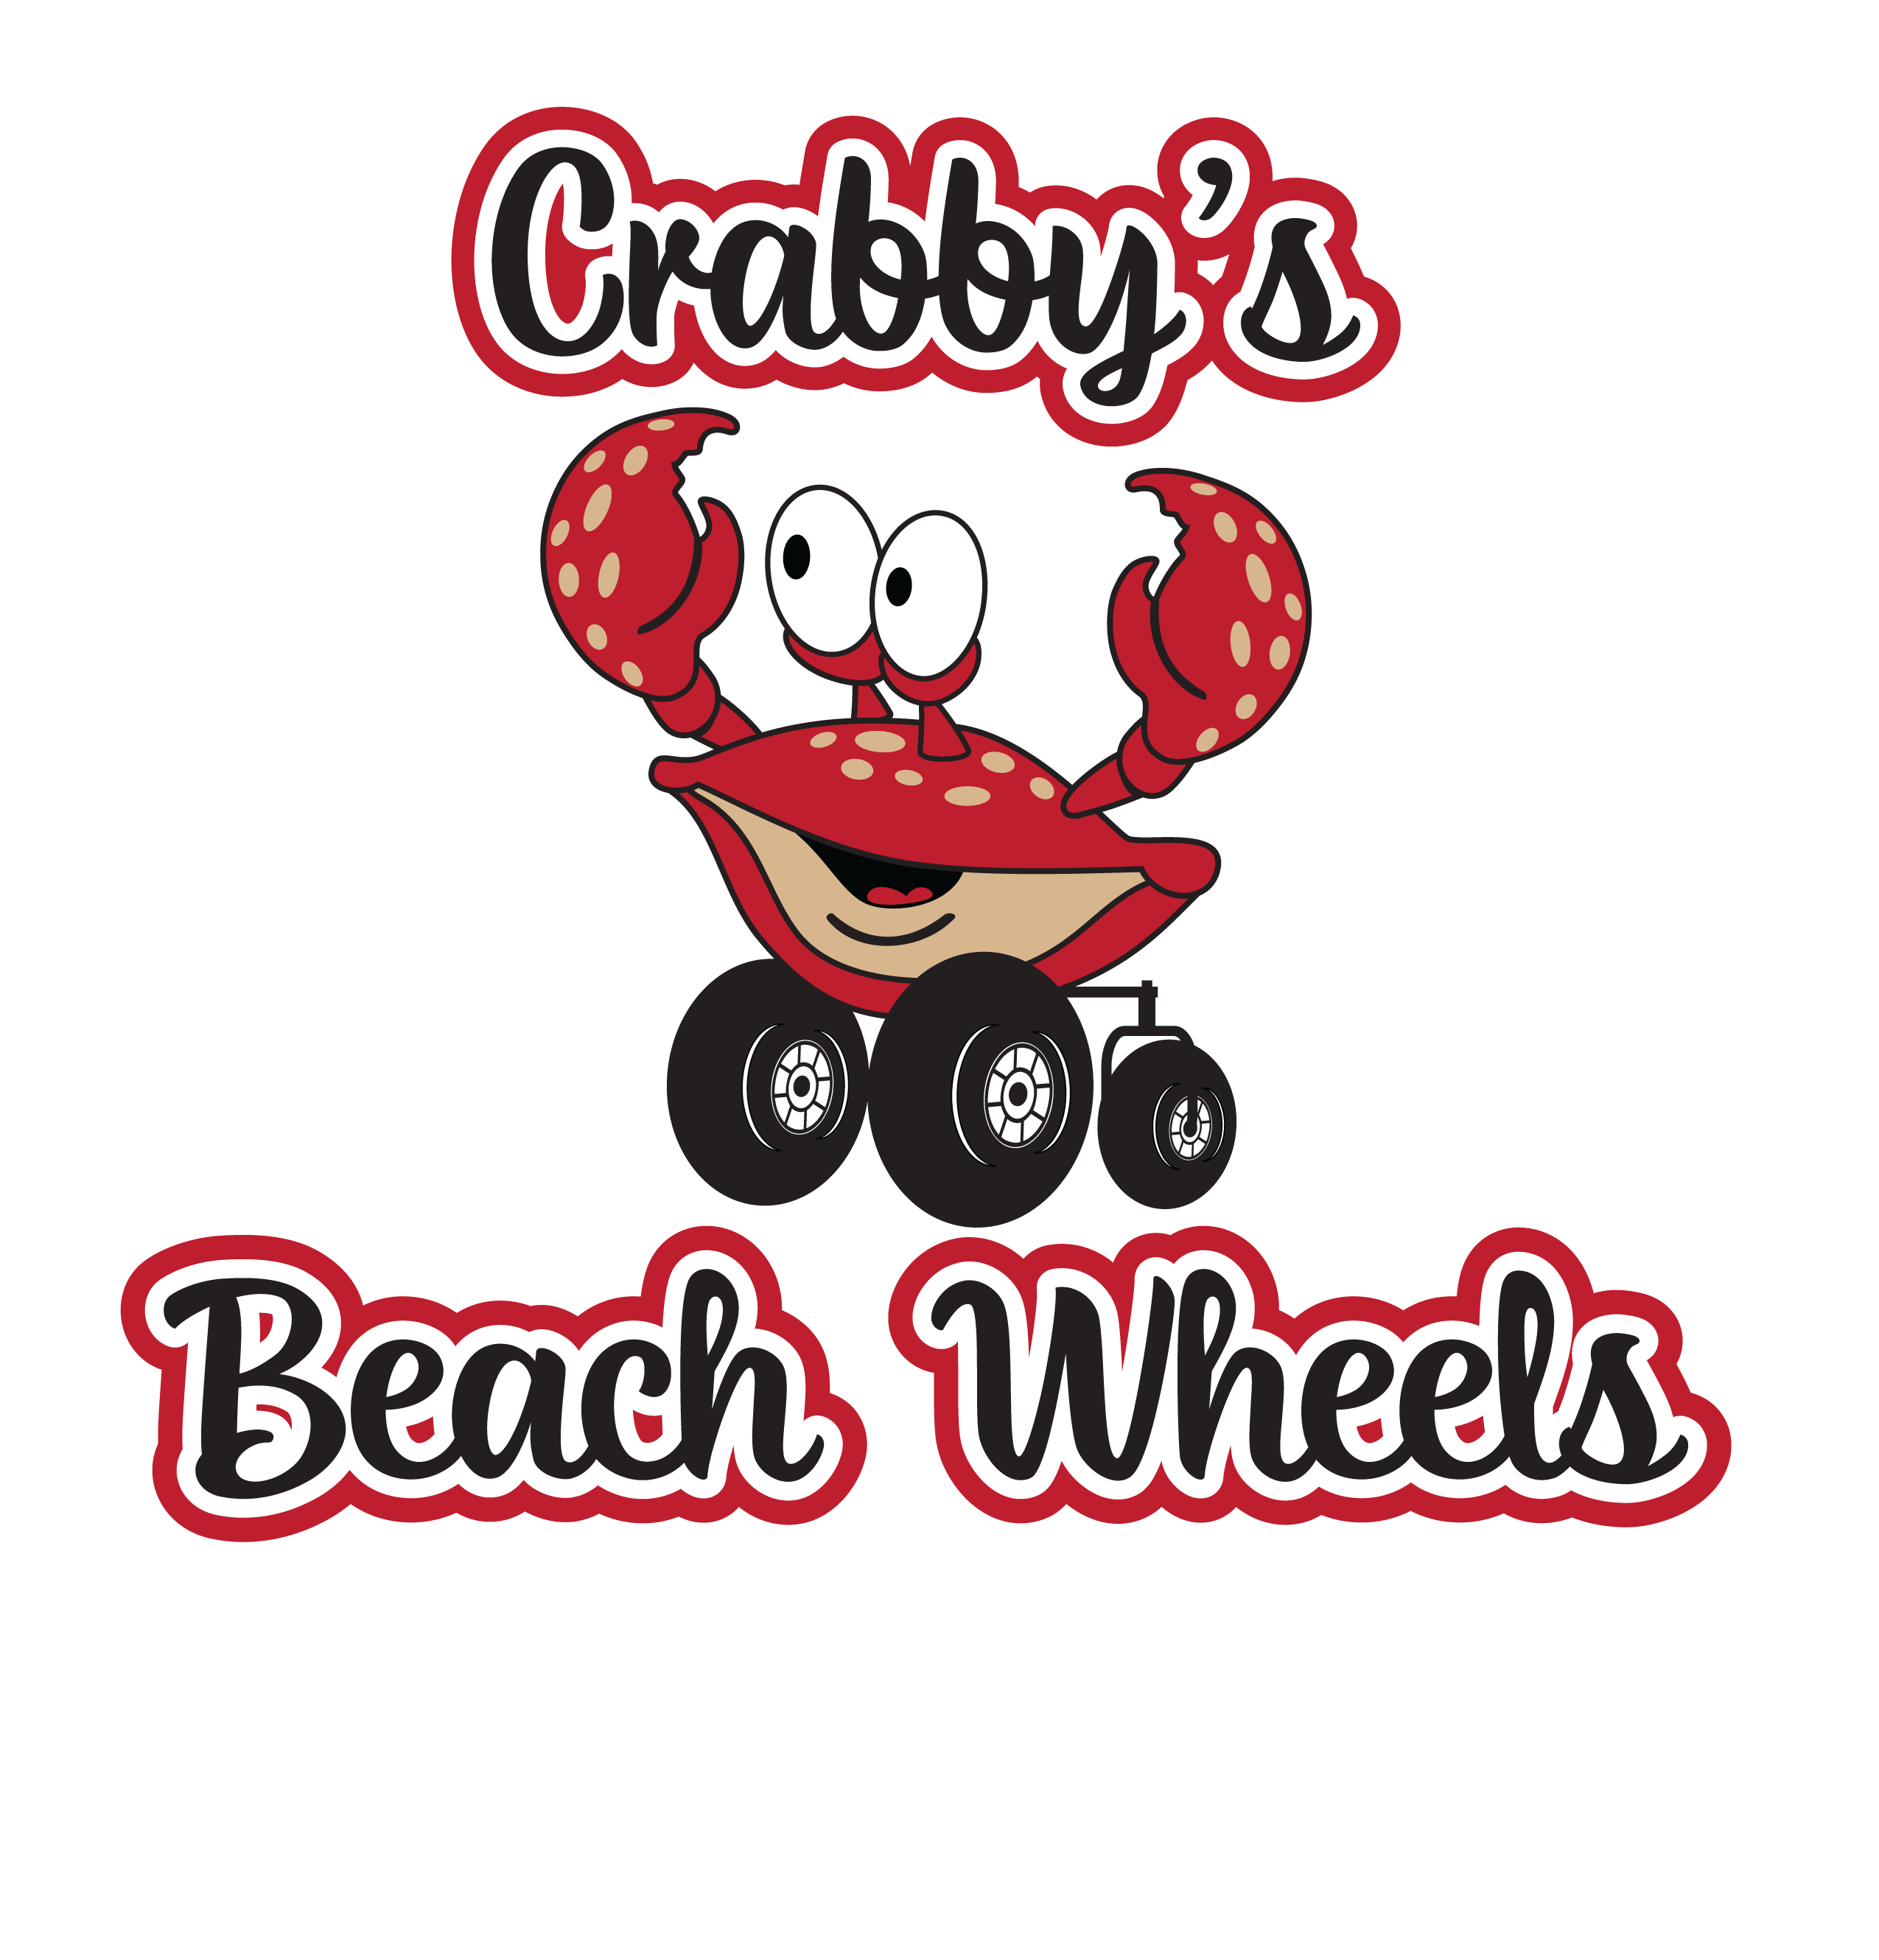 Crabby's Beach Wheels Logo Cocoa Beach FL Beach Wheelchair Rentals